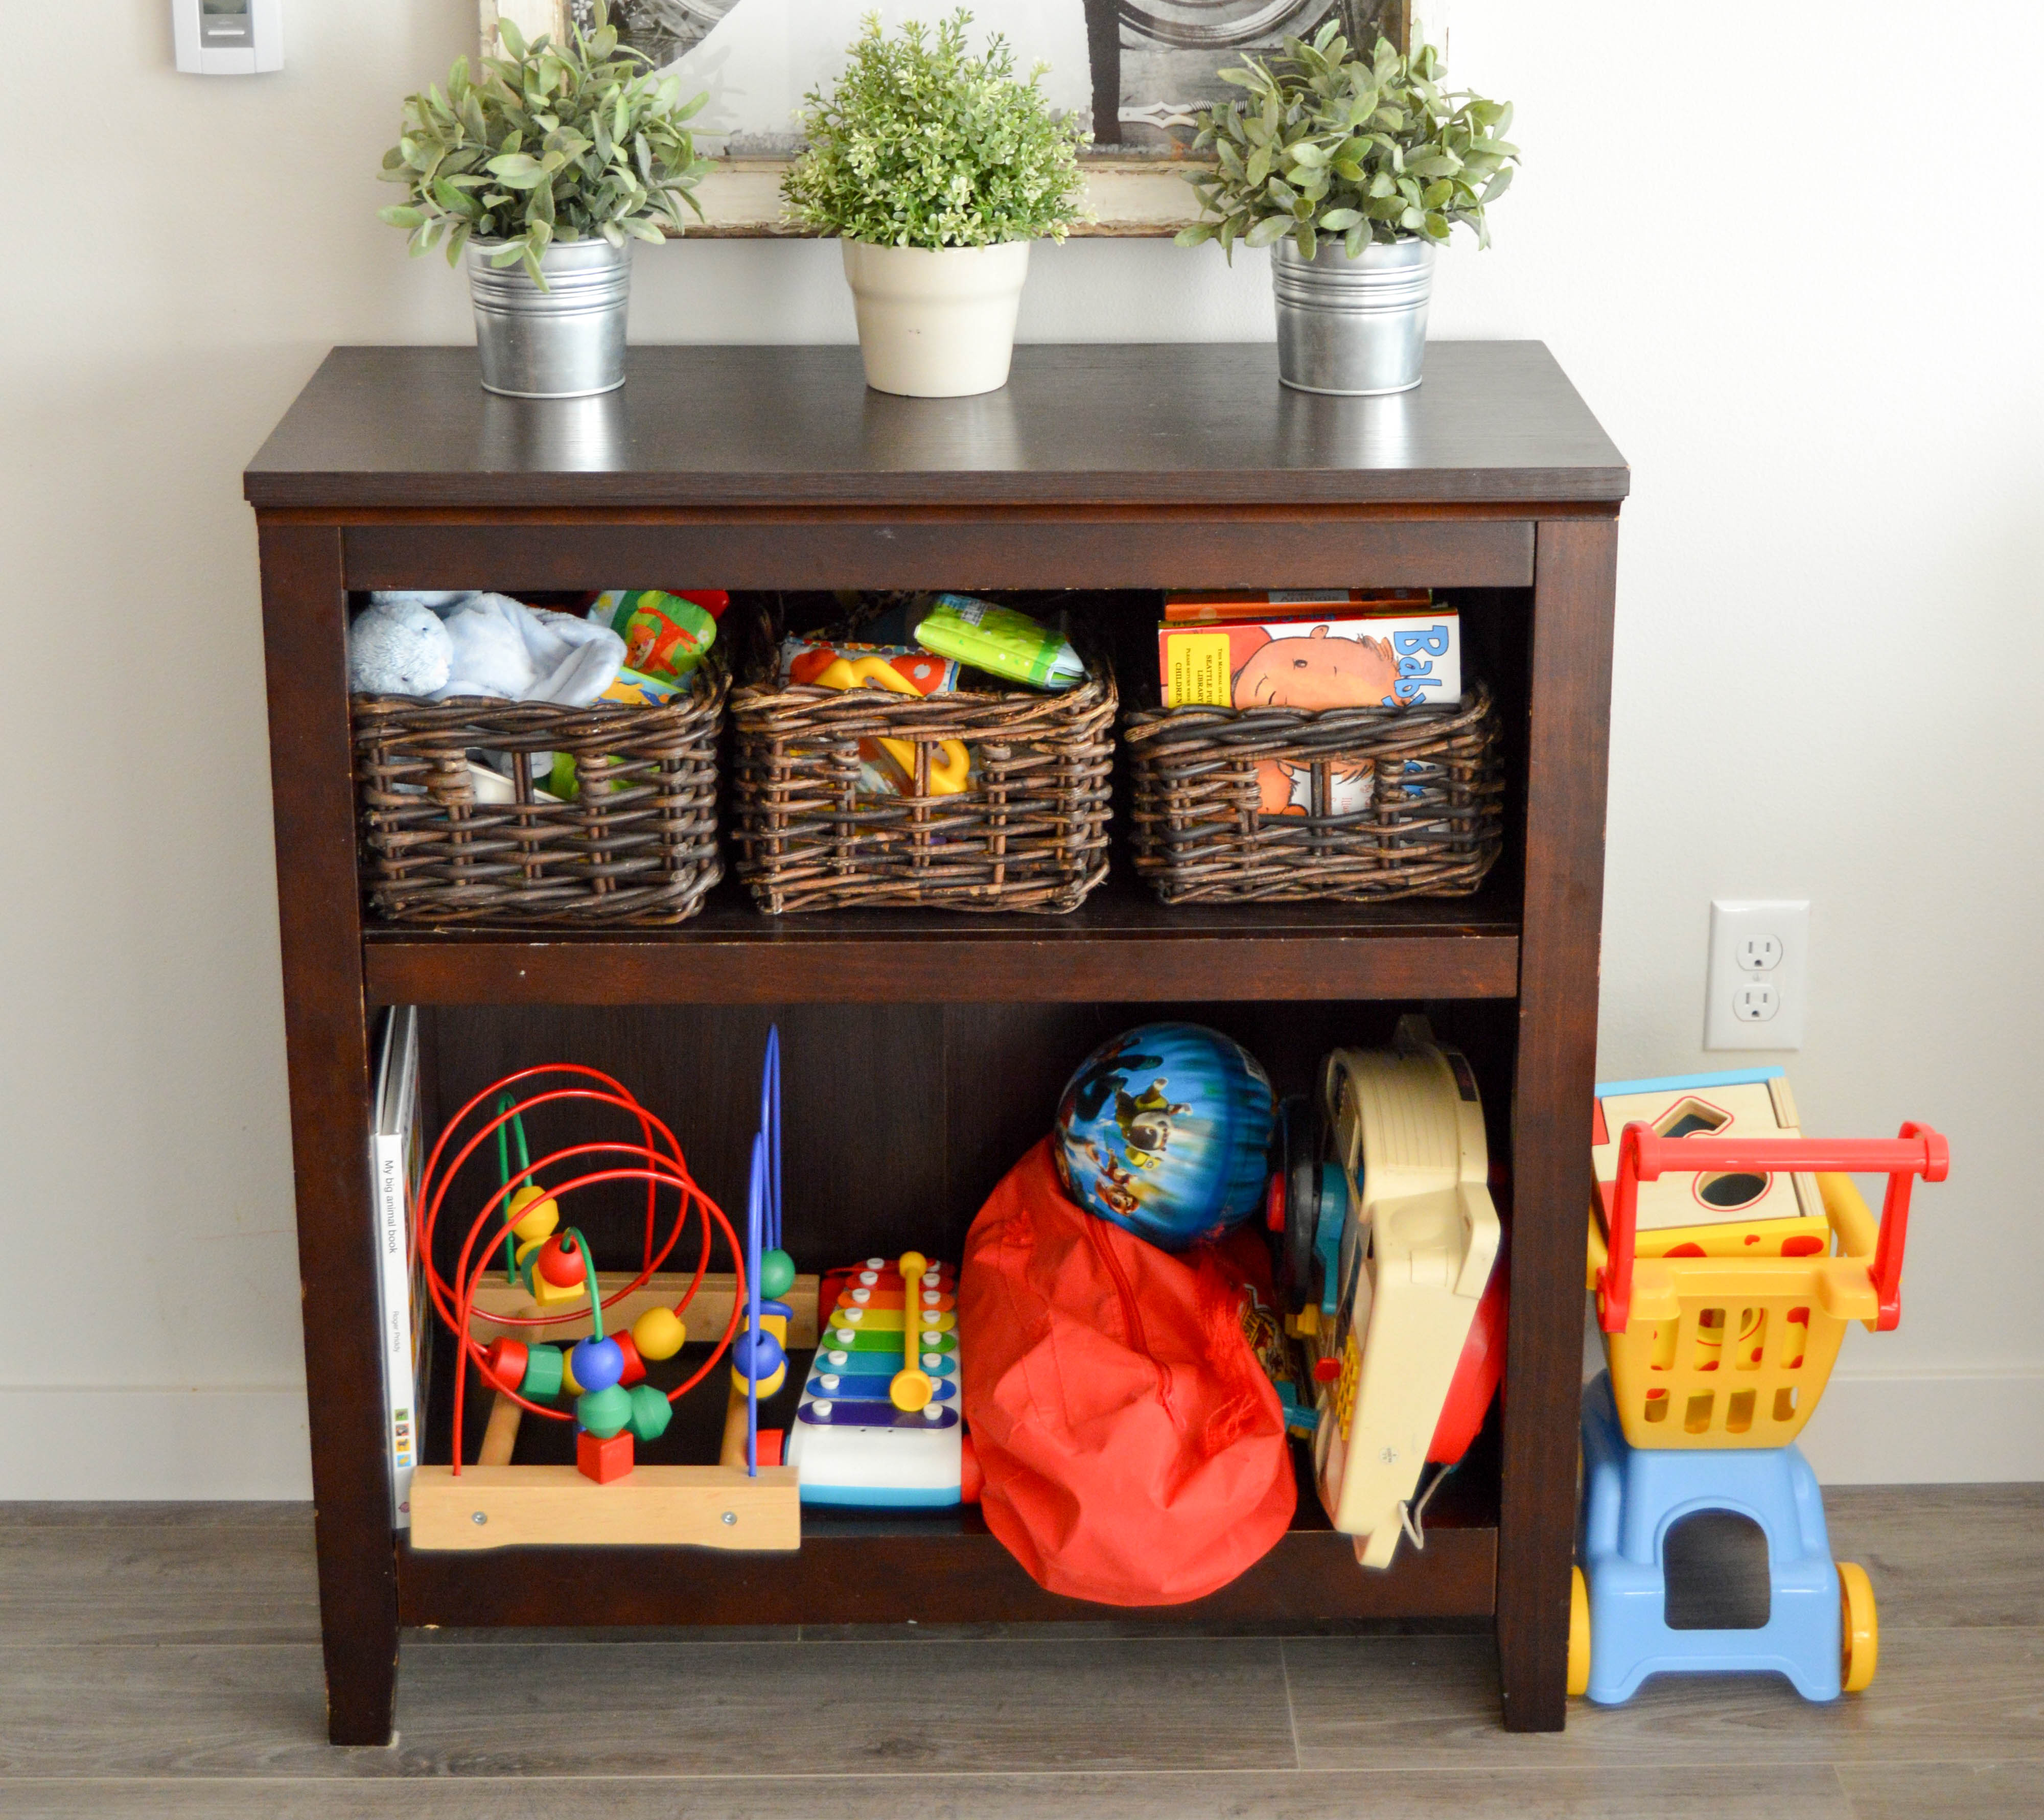 Tips for how to purge and organize your home like a pro. Steps for sorting into piles and purging rules to help you eliminate clutter and get rid of stuff. Toy station